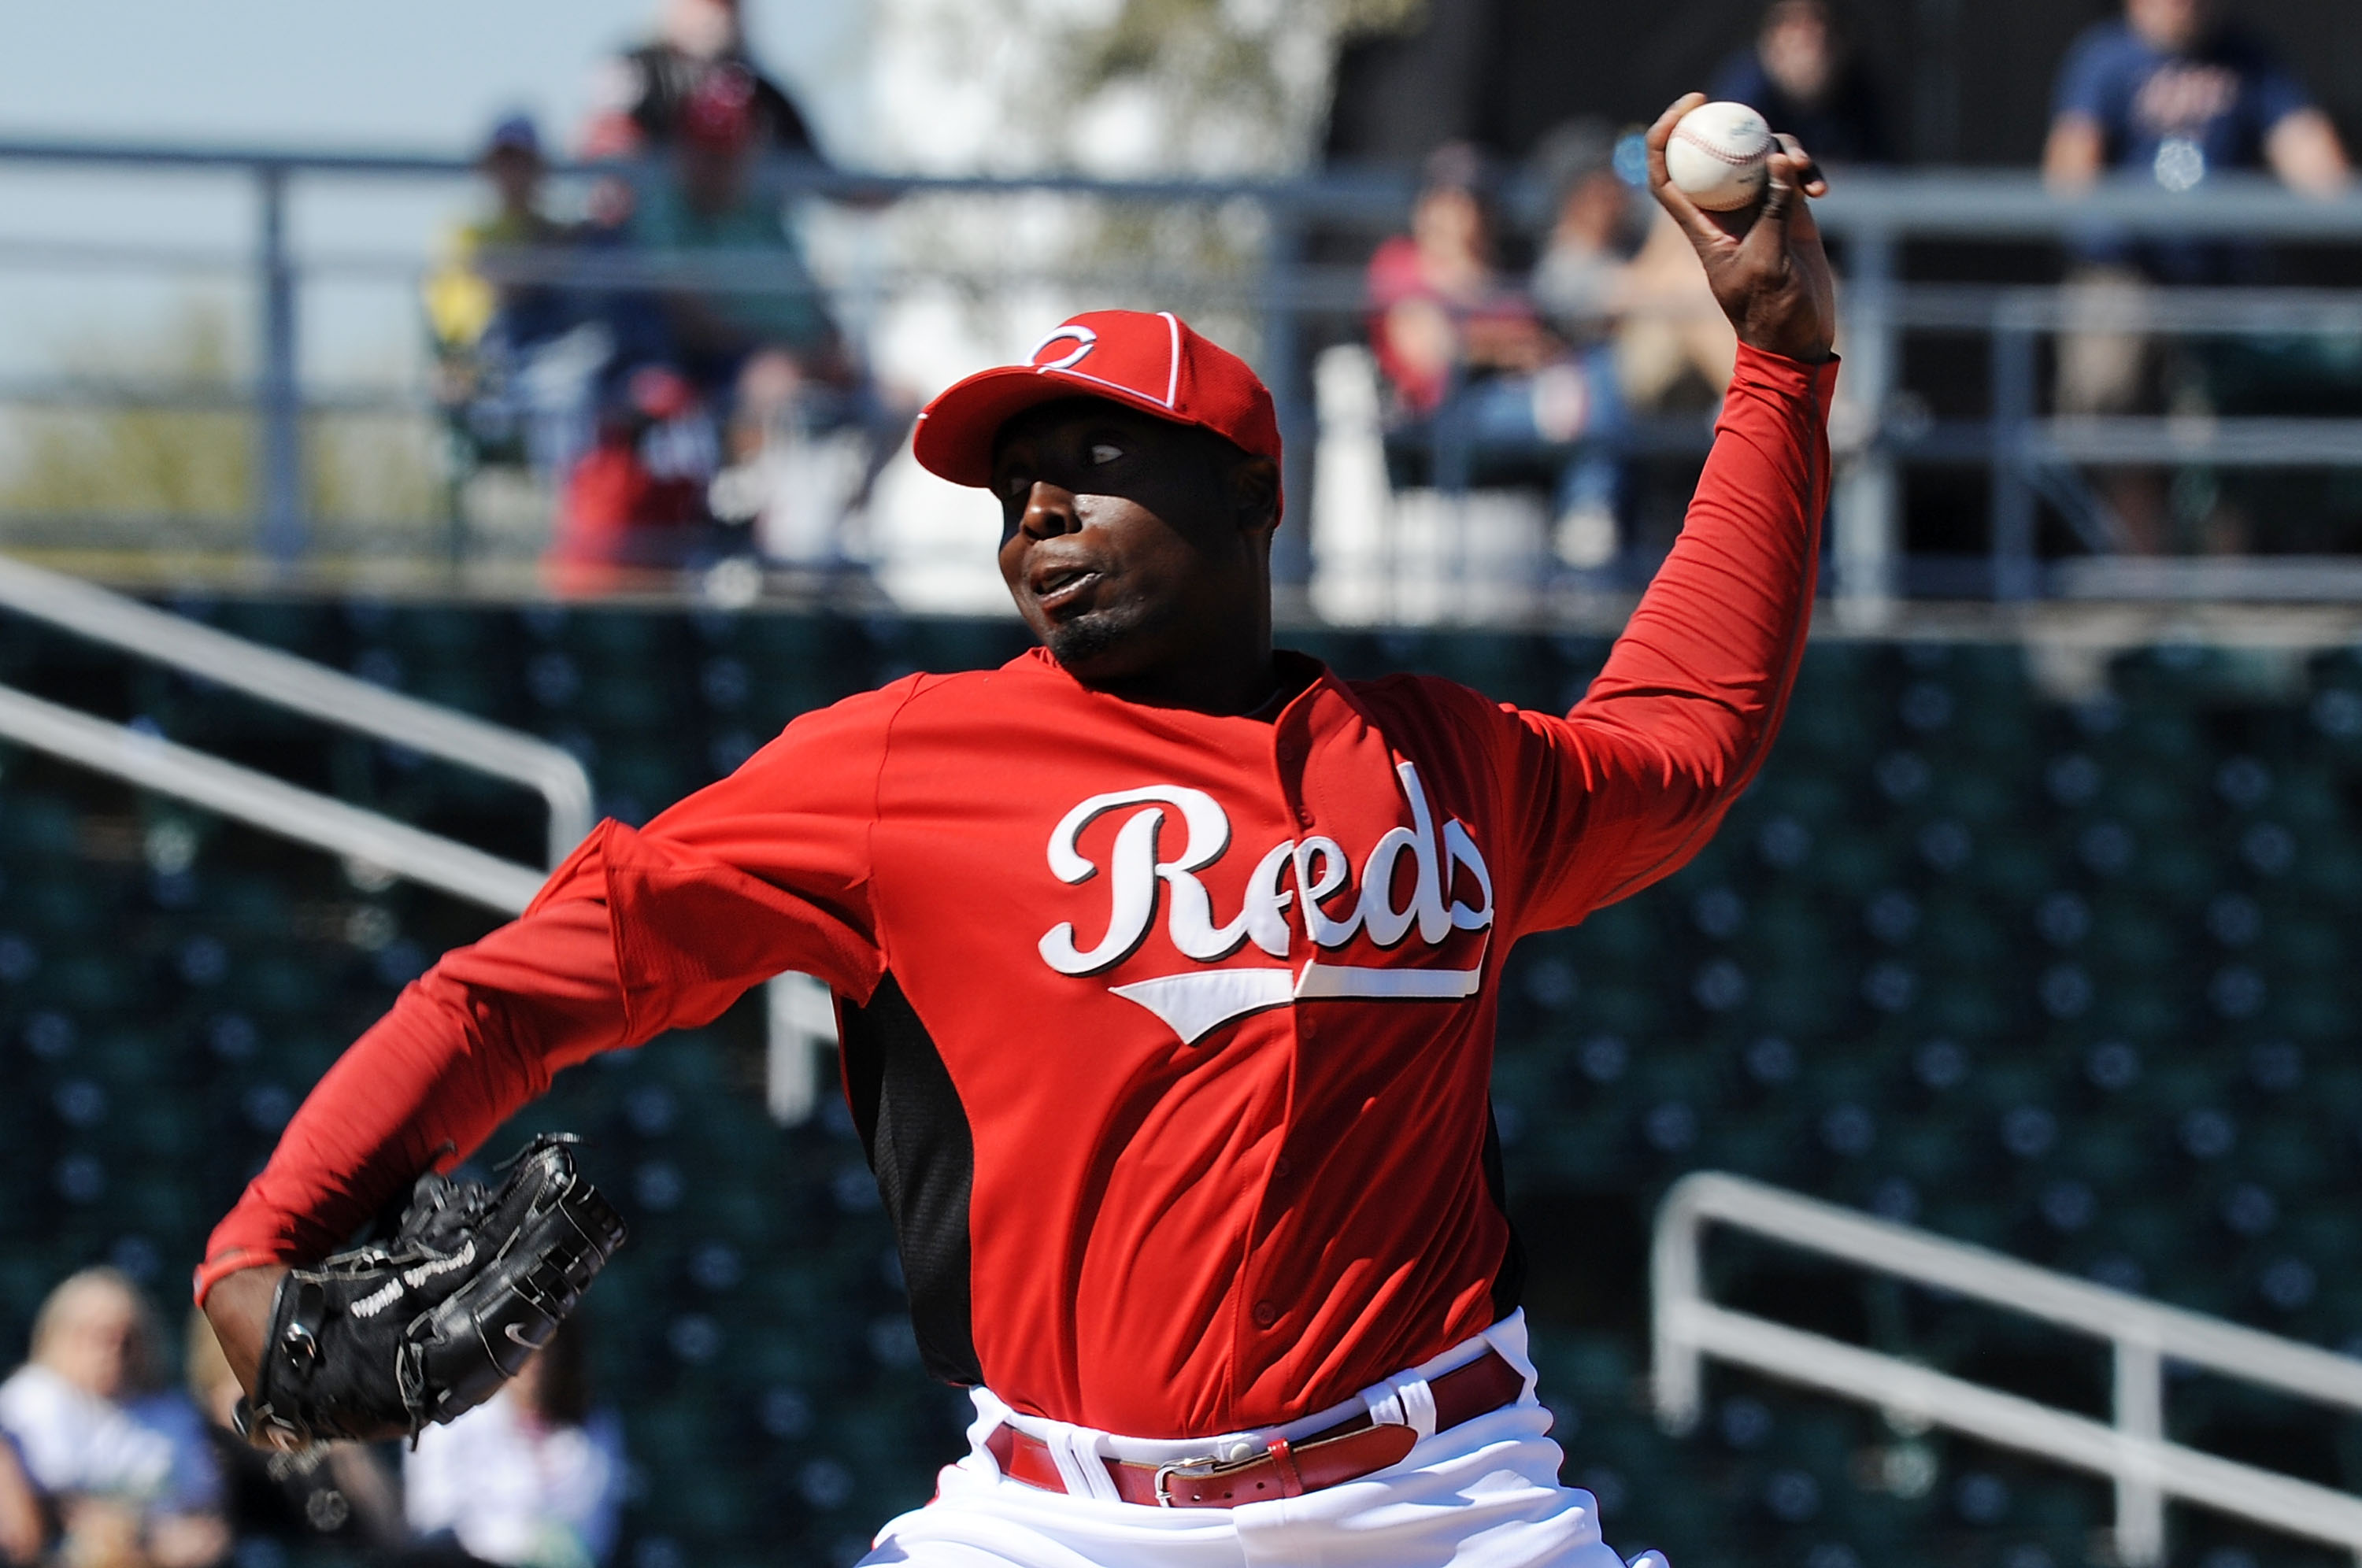 GOODYEAR, AZ - FEBRUARY 28:  Dontrelle Willis #50 of the Cincinnati Reds delivers a pitch against the Cleveland Indians at Goodyear Ballpark on February 28, 2011 in Goodyear, Arizona.  (Photo by Norm Hall/Getty Images)